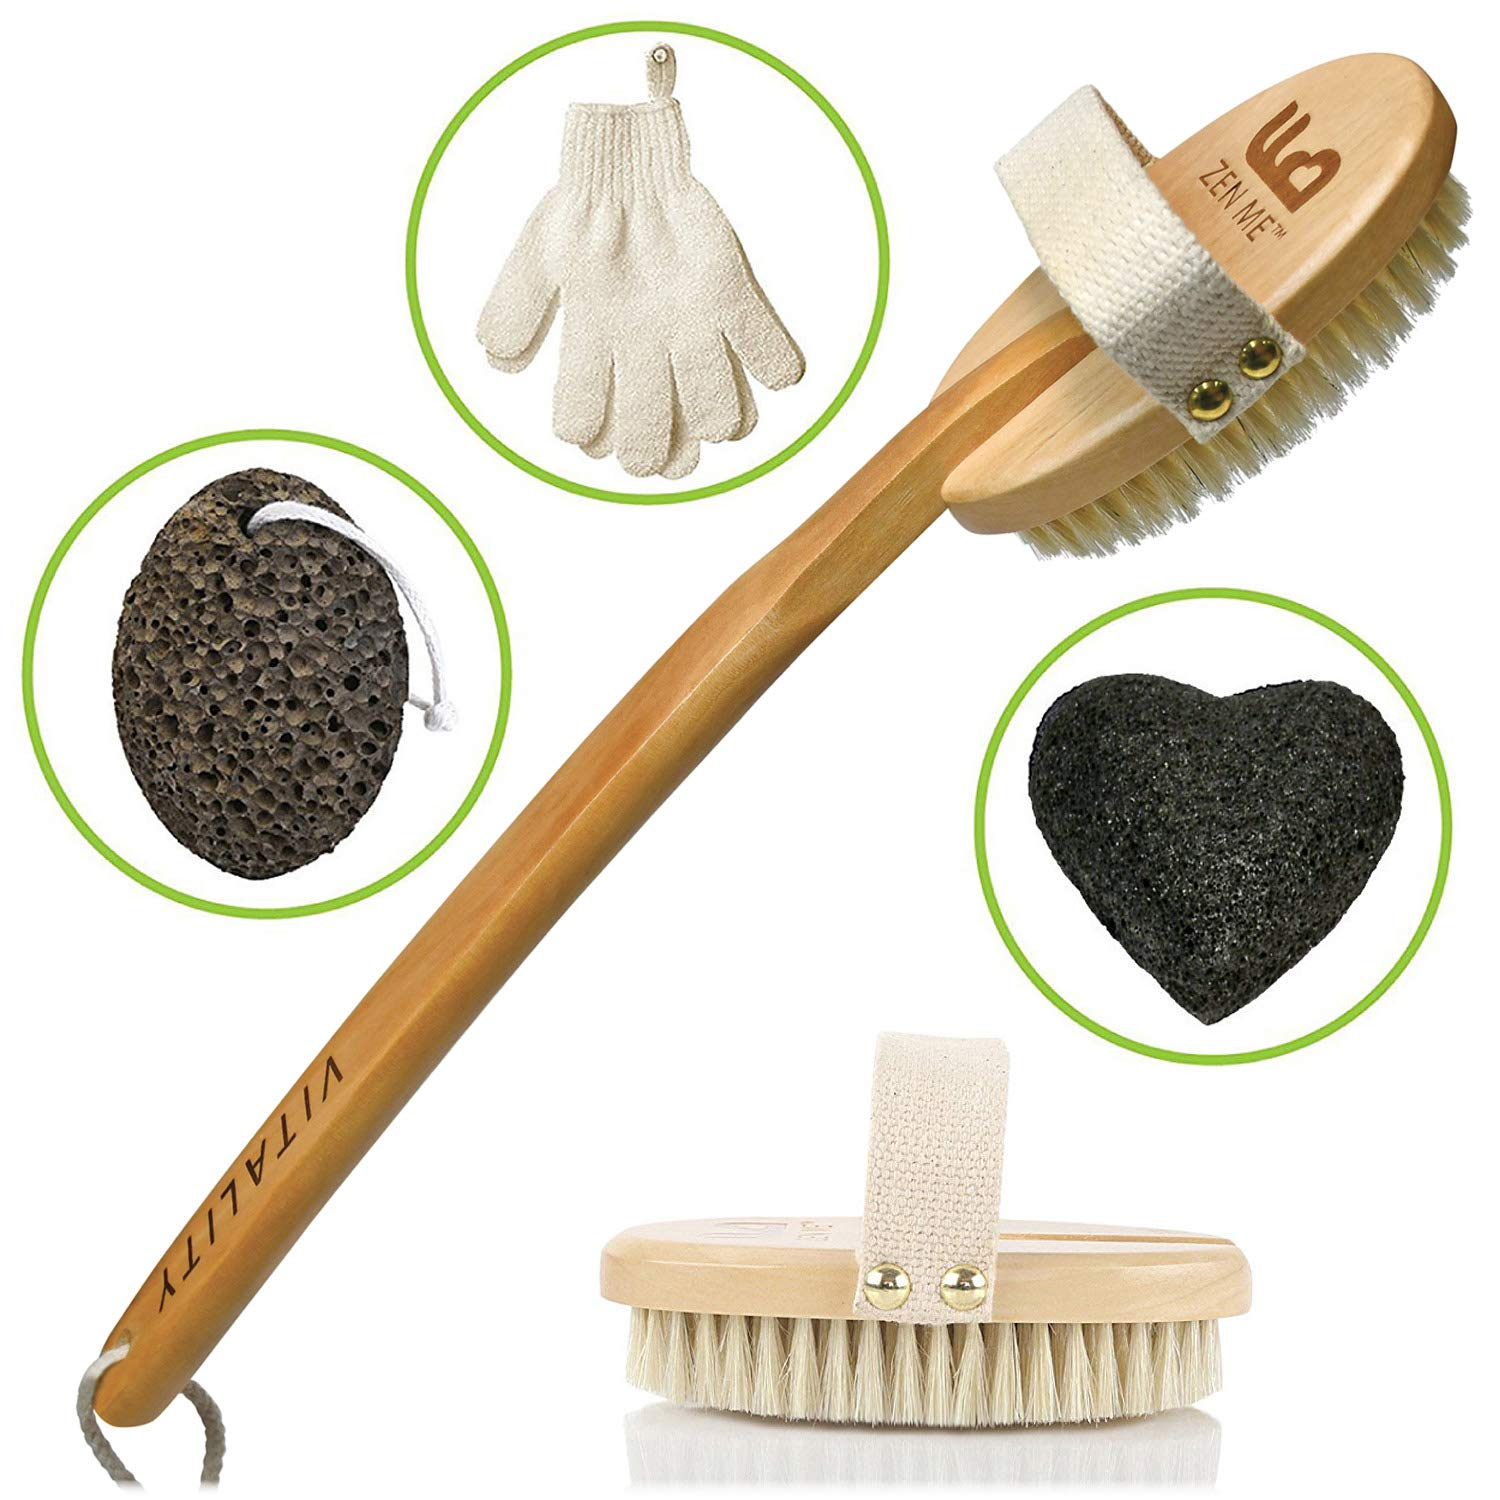 Premium Dry Brushing Body Brush for Lymphatic Drainage and Cellulite Treatment, Plastic-Free Natural Exfoliating Brush Set with Scrub Gloves, Konjac Sponge, Pumice Stone for Glowing More Youthful Skin ZEN ME 1